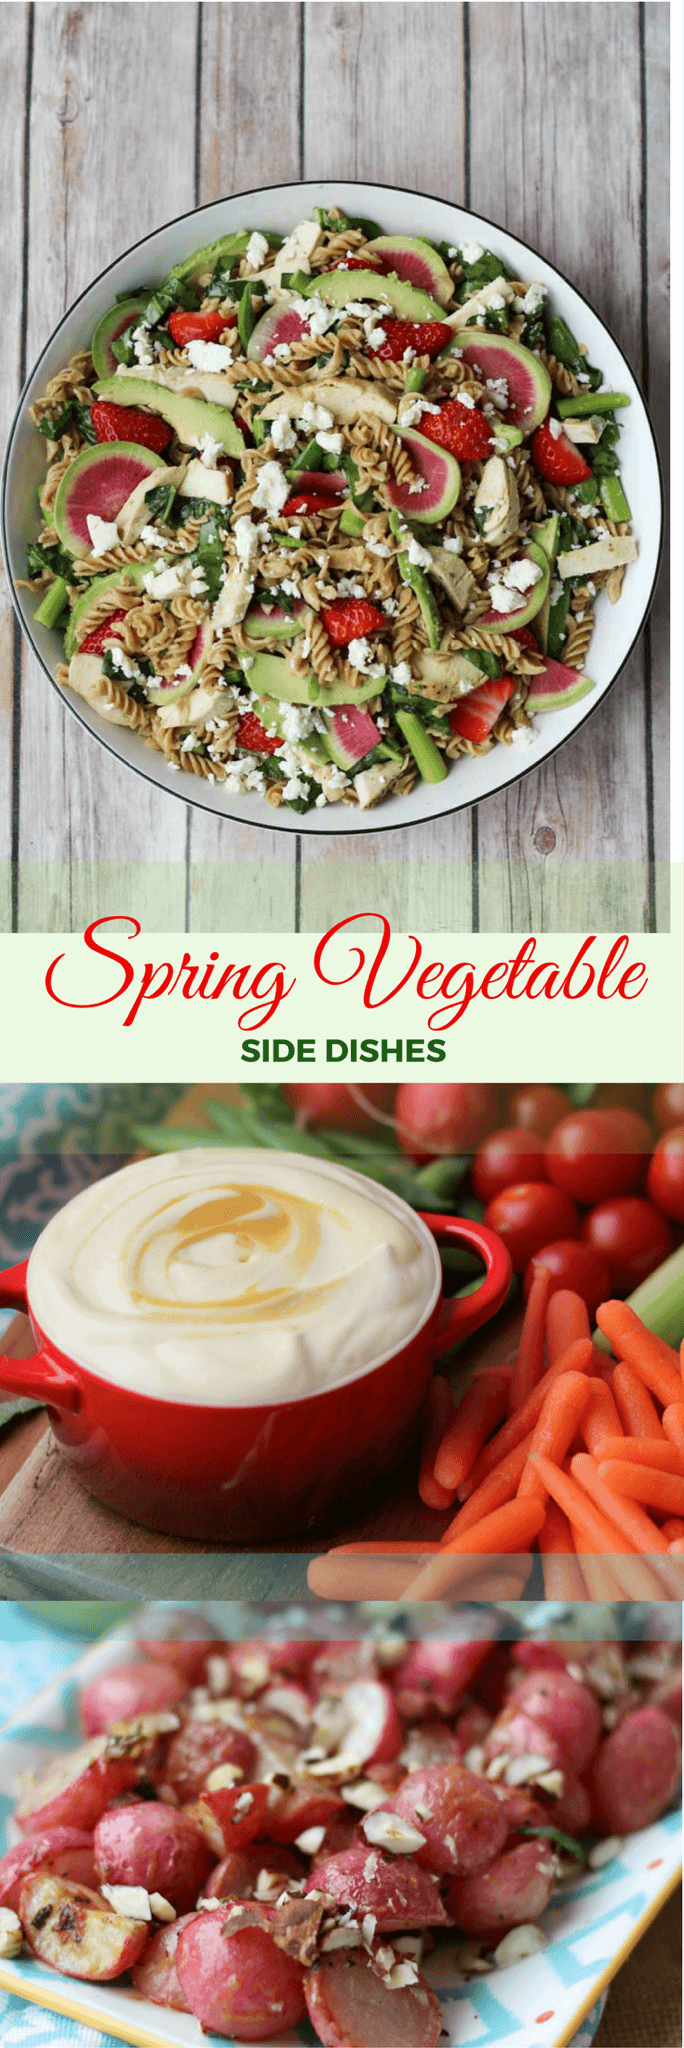 my three favourite Spring Vegetable side dishes to help you eat your vegetables like my roasted radishes, pasta salad, and honey mustard veggie dip!